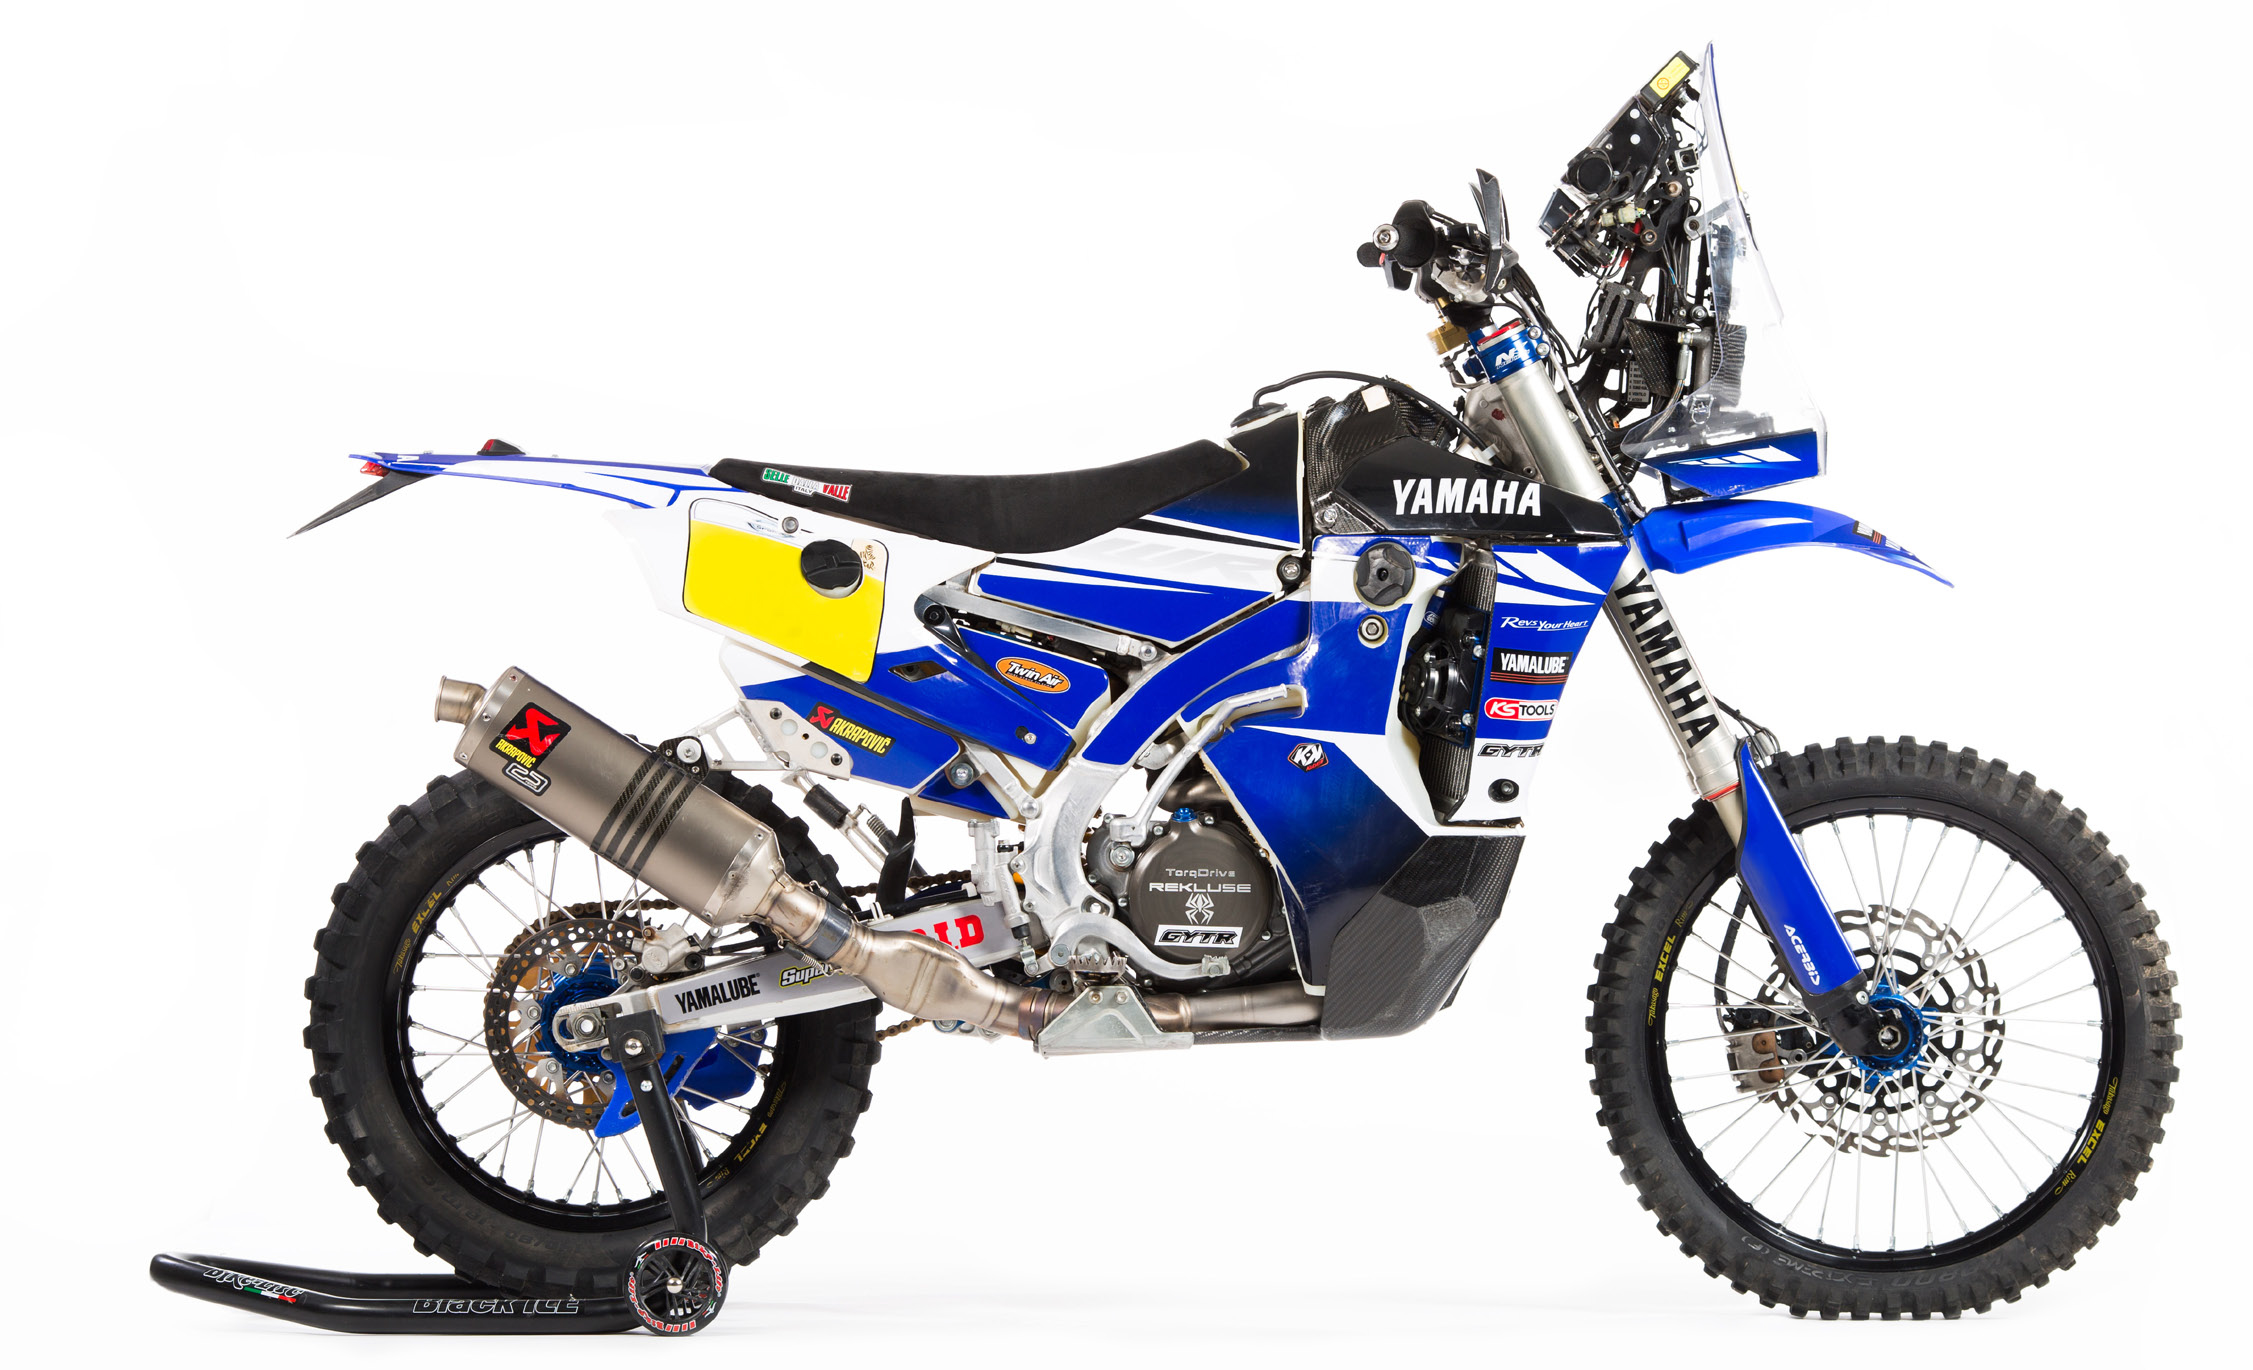 announcing the official yamaha wr450f rally replica yamaha racing. Black Bedroom Furniture Sets. Home Design Ideas